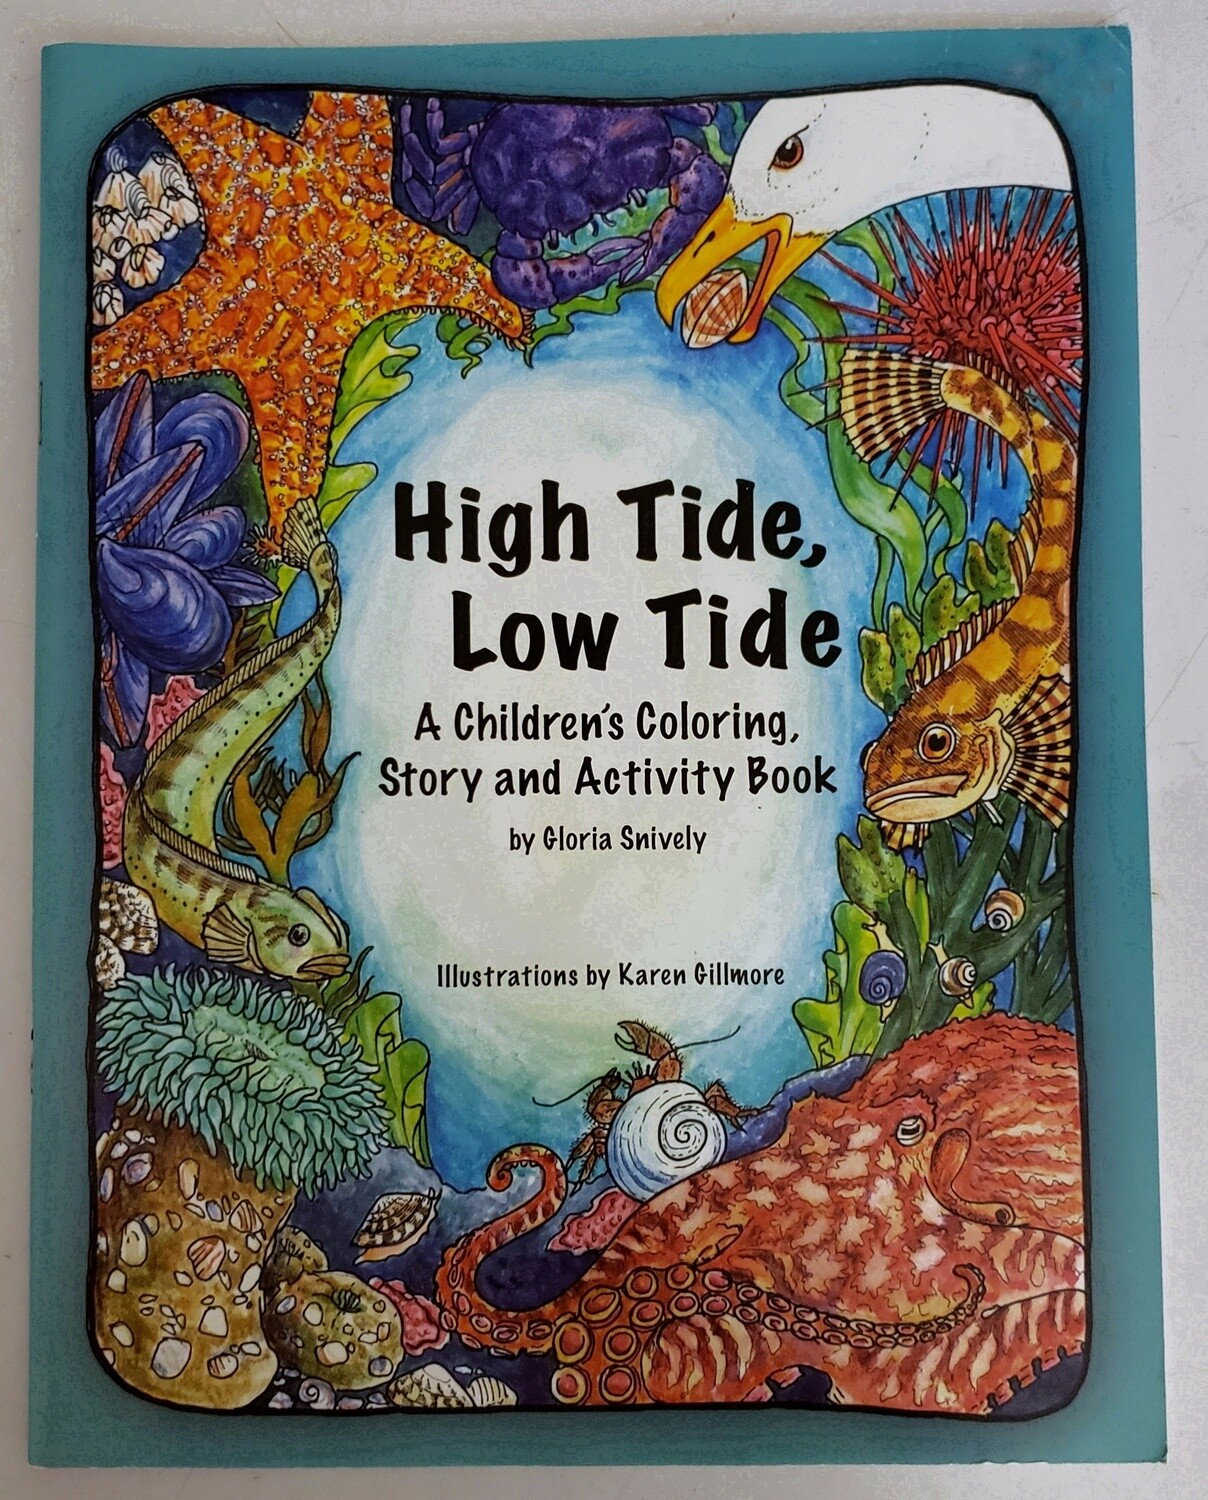 High Tide, Low Tide by Gloria Snively